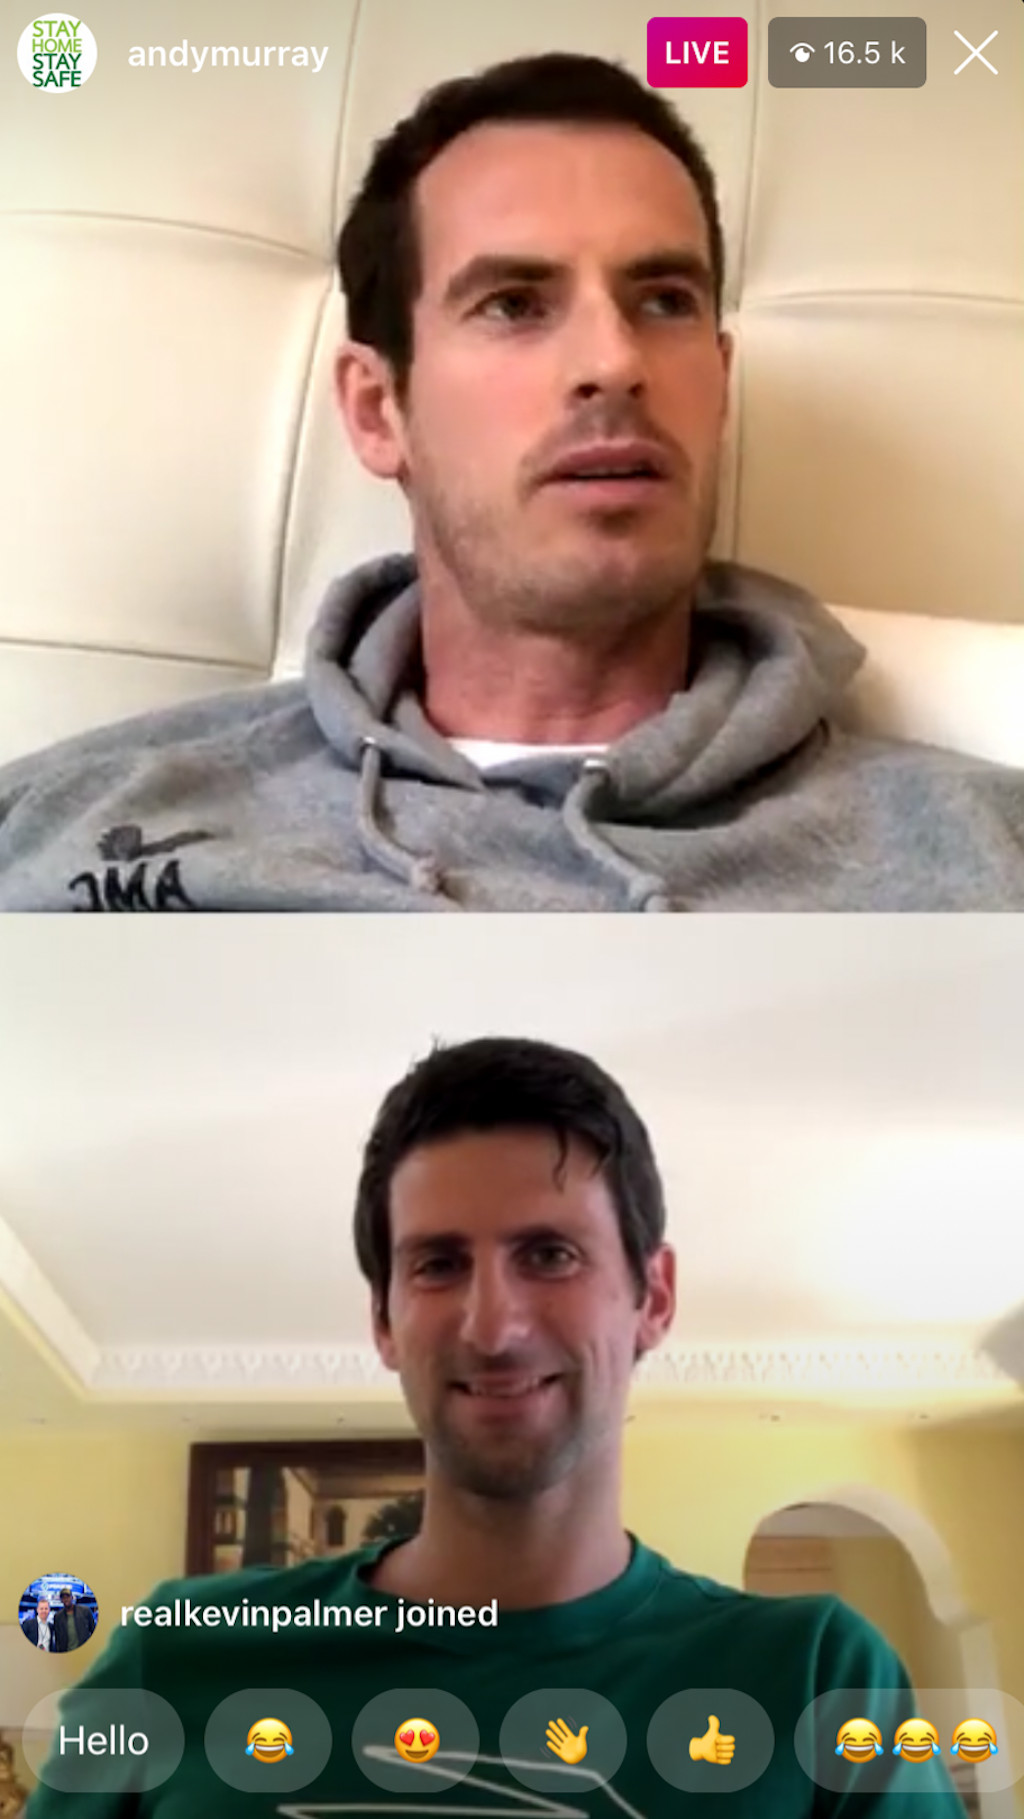 Andy Murray and Novak Djokovic Live Instagram Chat